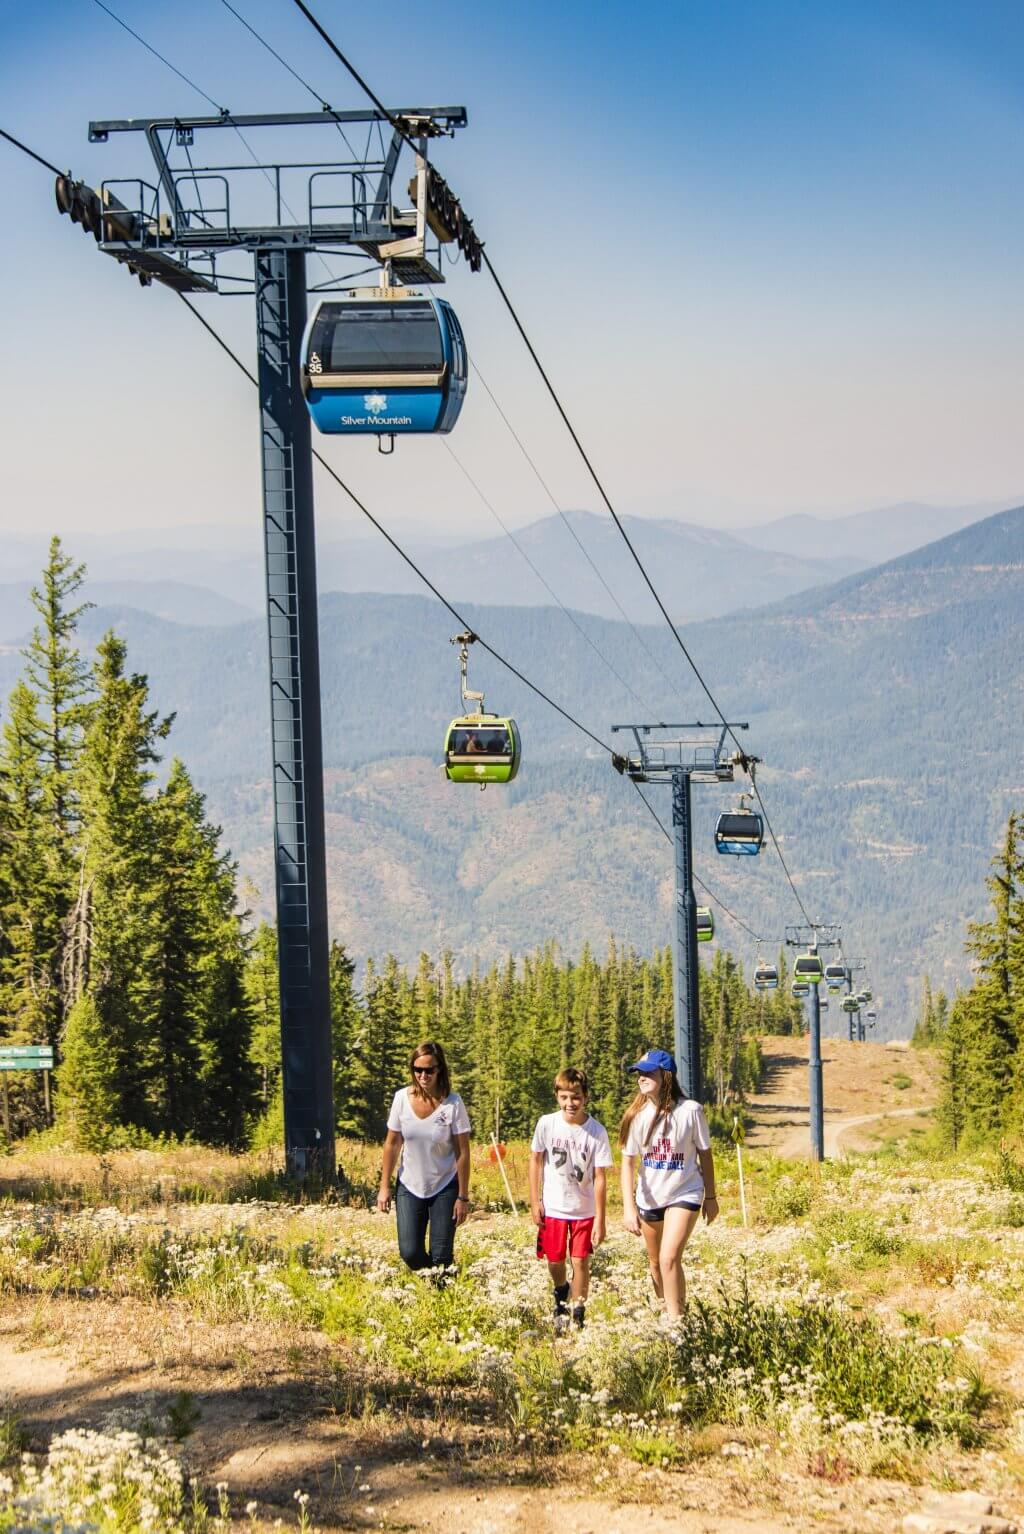 people hiking near silver mountain scenic gondola